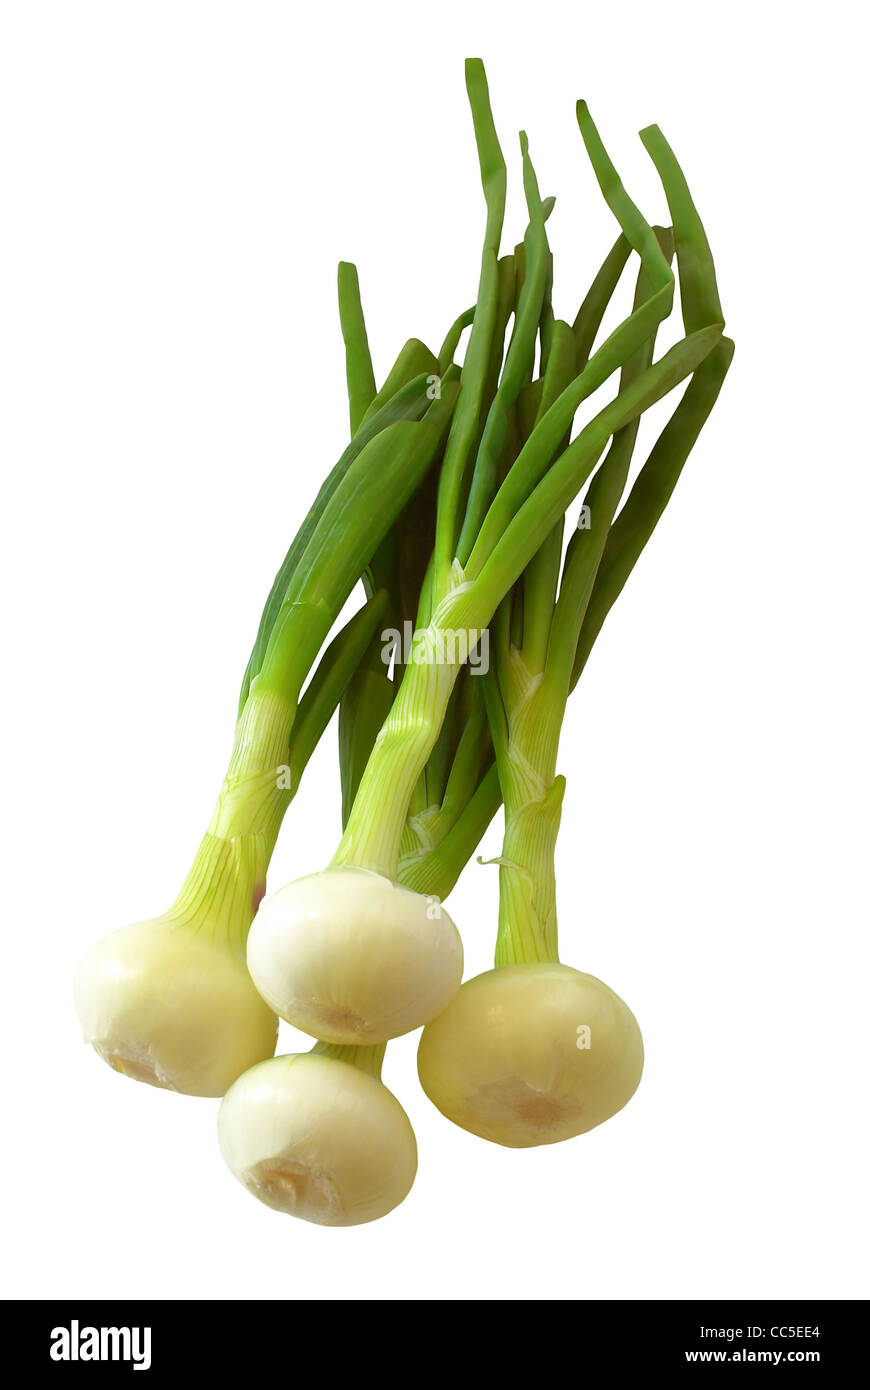 Purified green onions. - Stock Image